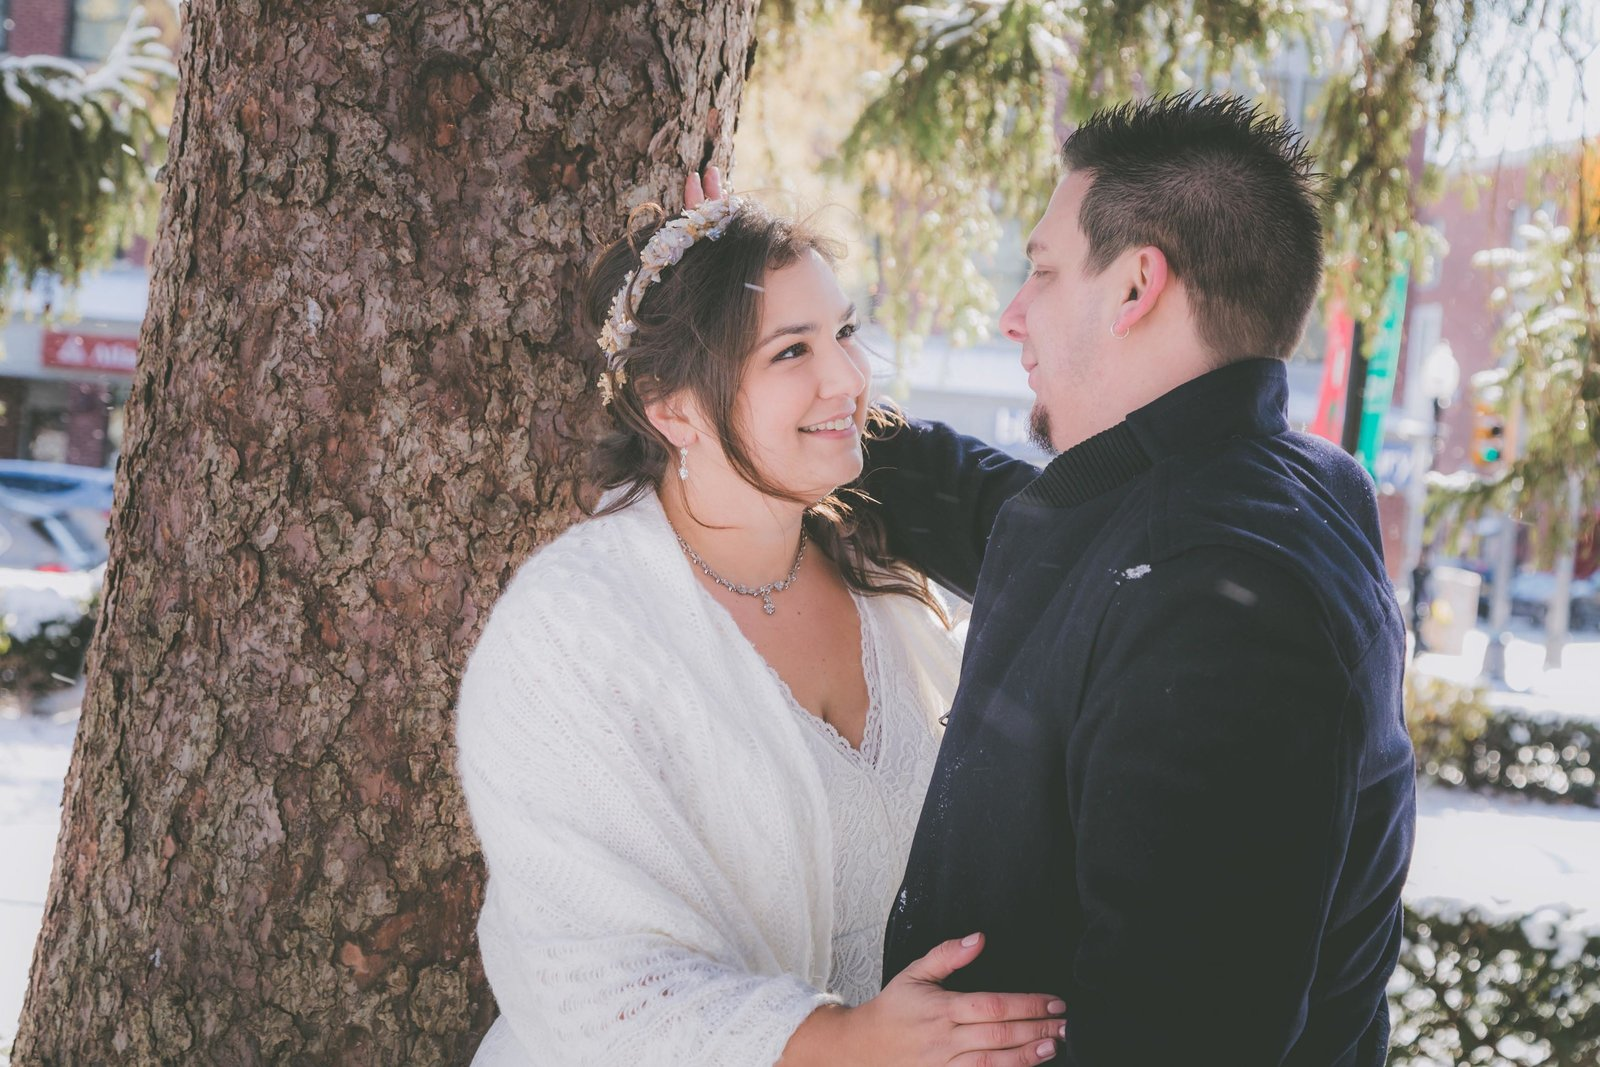 Groom looks at bride against the tree while it flurries on their elopement day.